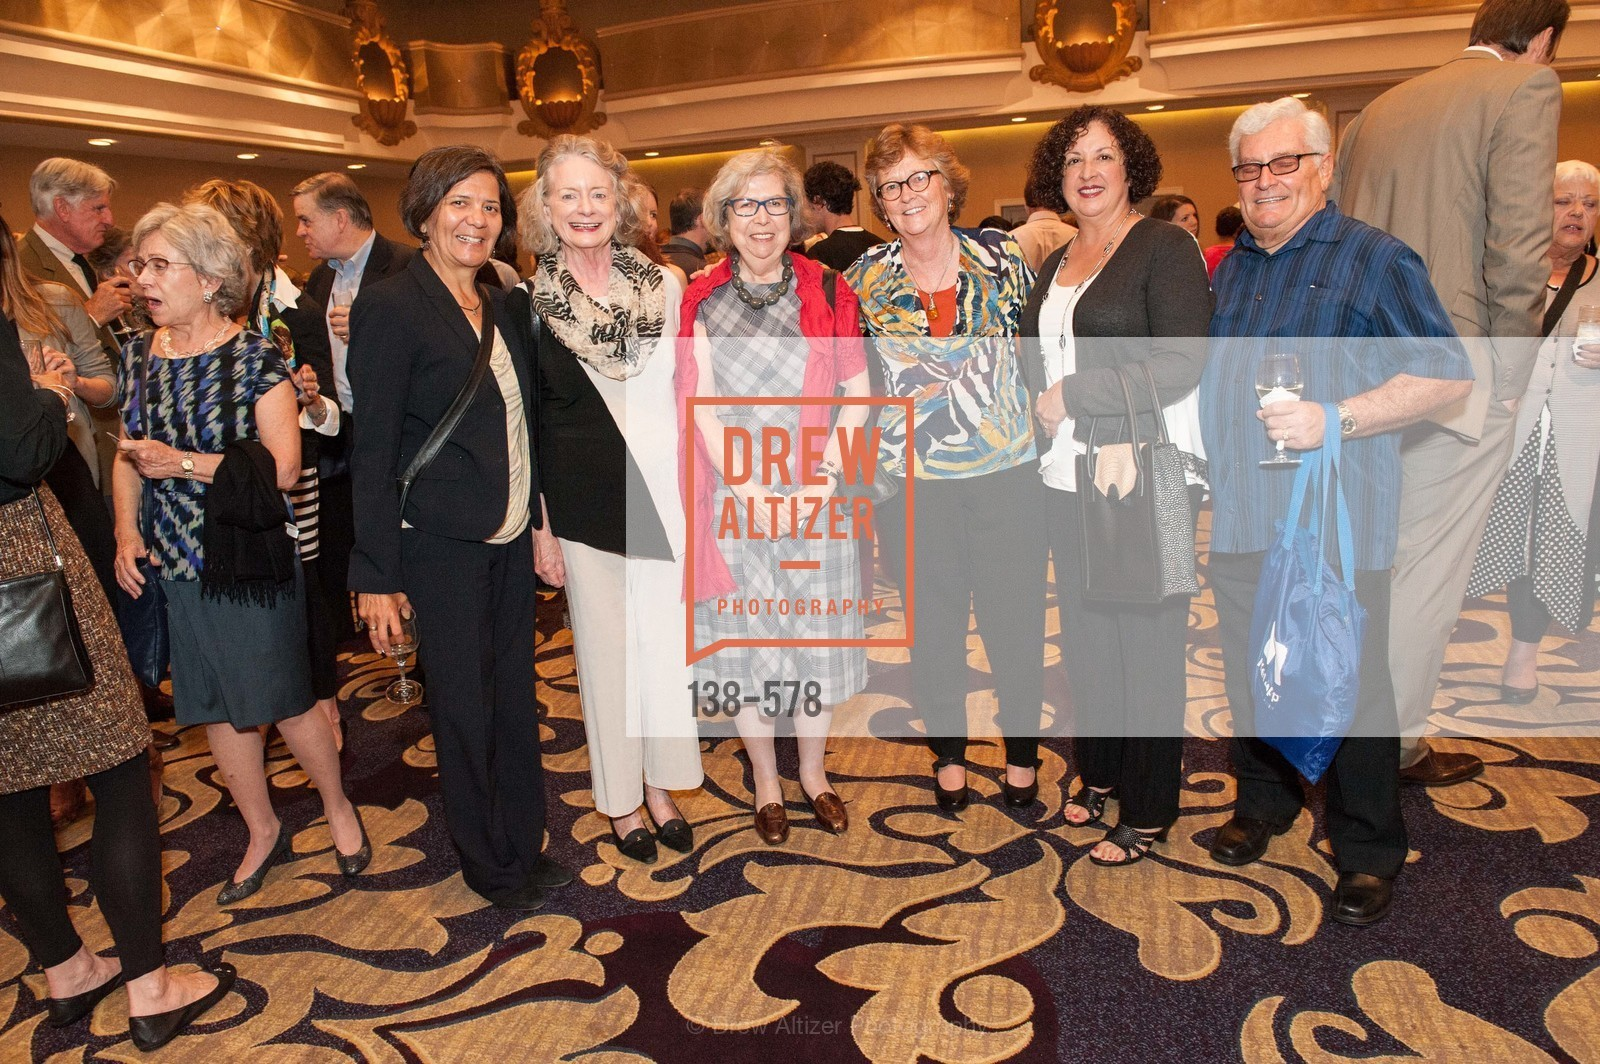 Sandra R. Hernandez, Maryanne McGuire-Hickey, Elsie Galley, Martha Ryan, Maria O'Brian, HOMELESS PRENATAL Annual Luncheon 2014, US, October 1st, 2014,Drew Altizer, Drew Altizer Photography, full-service event agency, private events, San Francisco photographer, photographer California